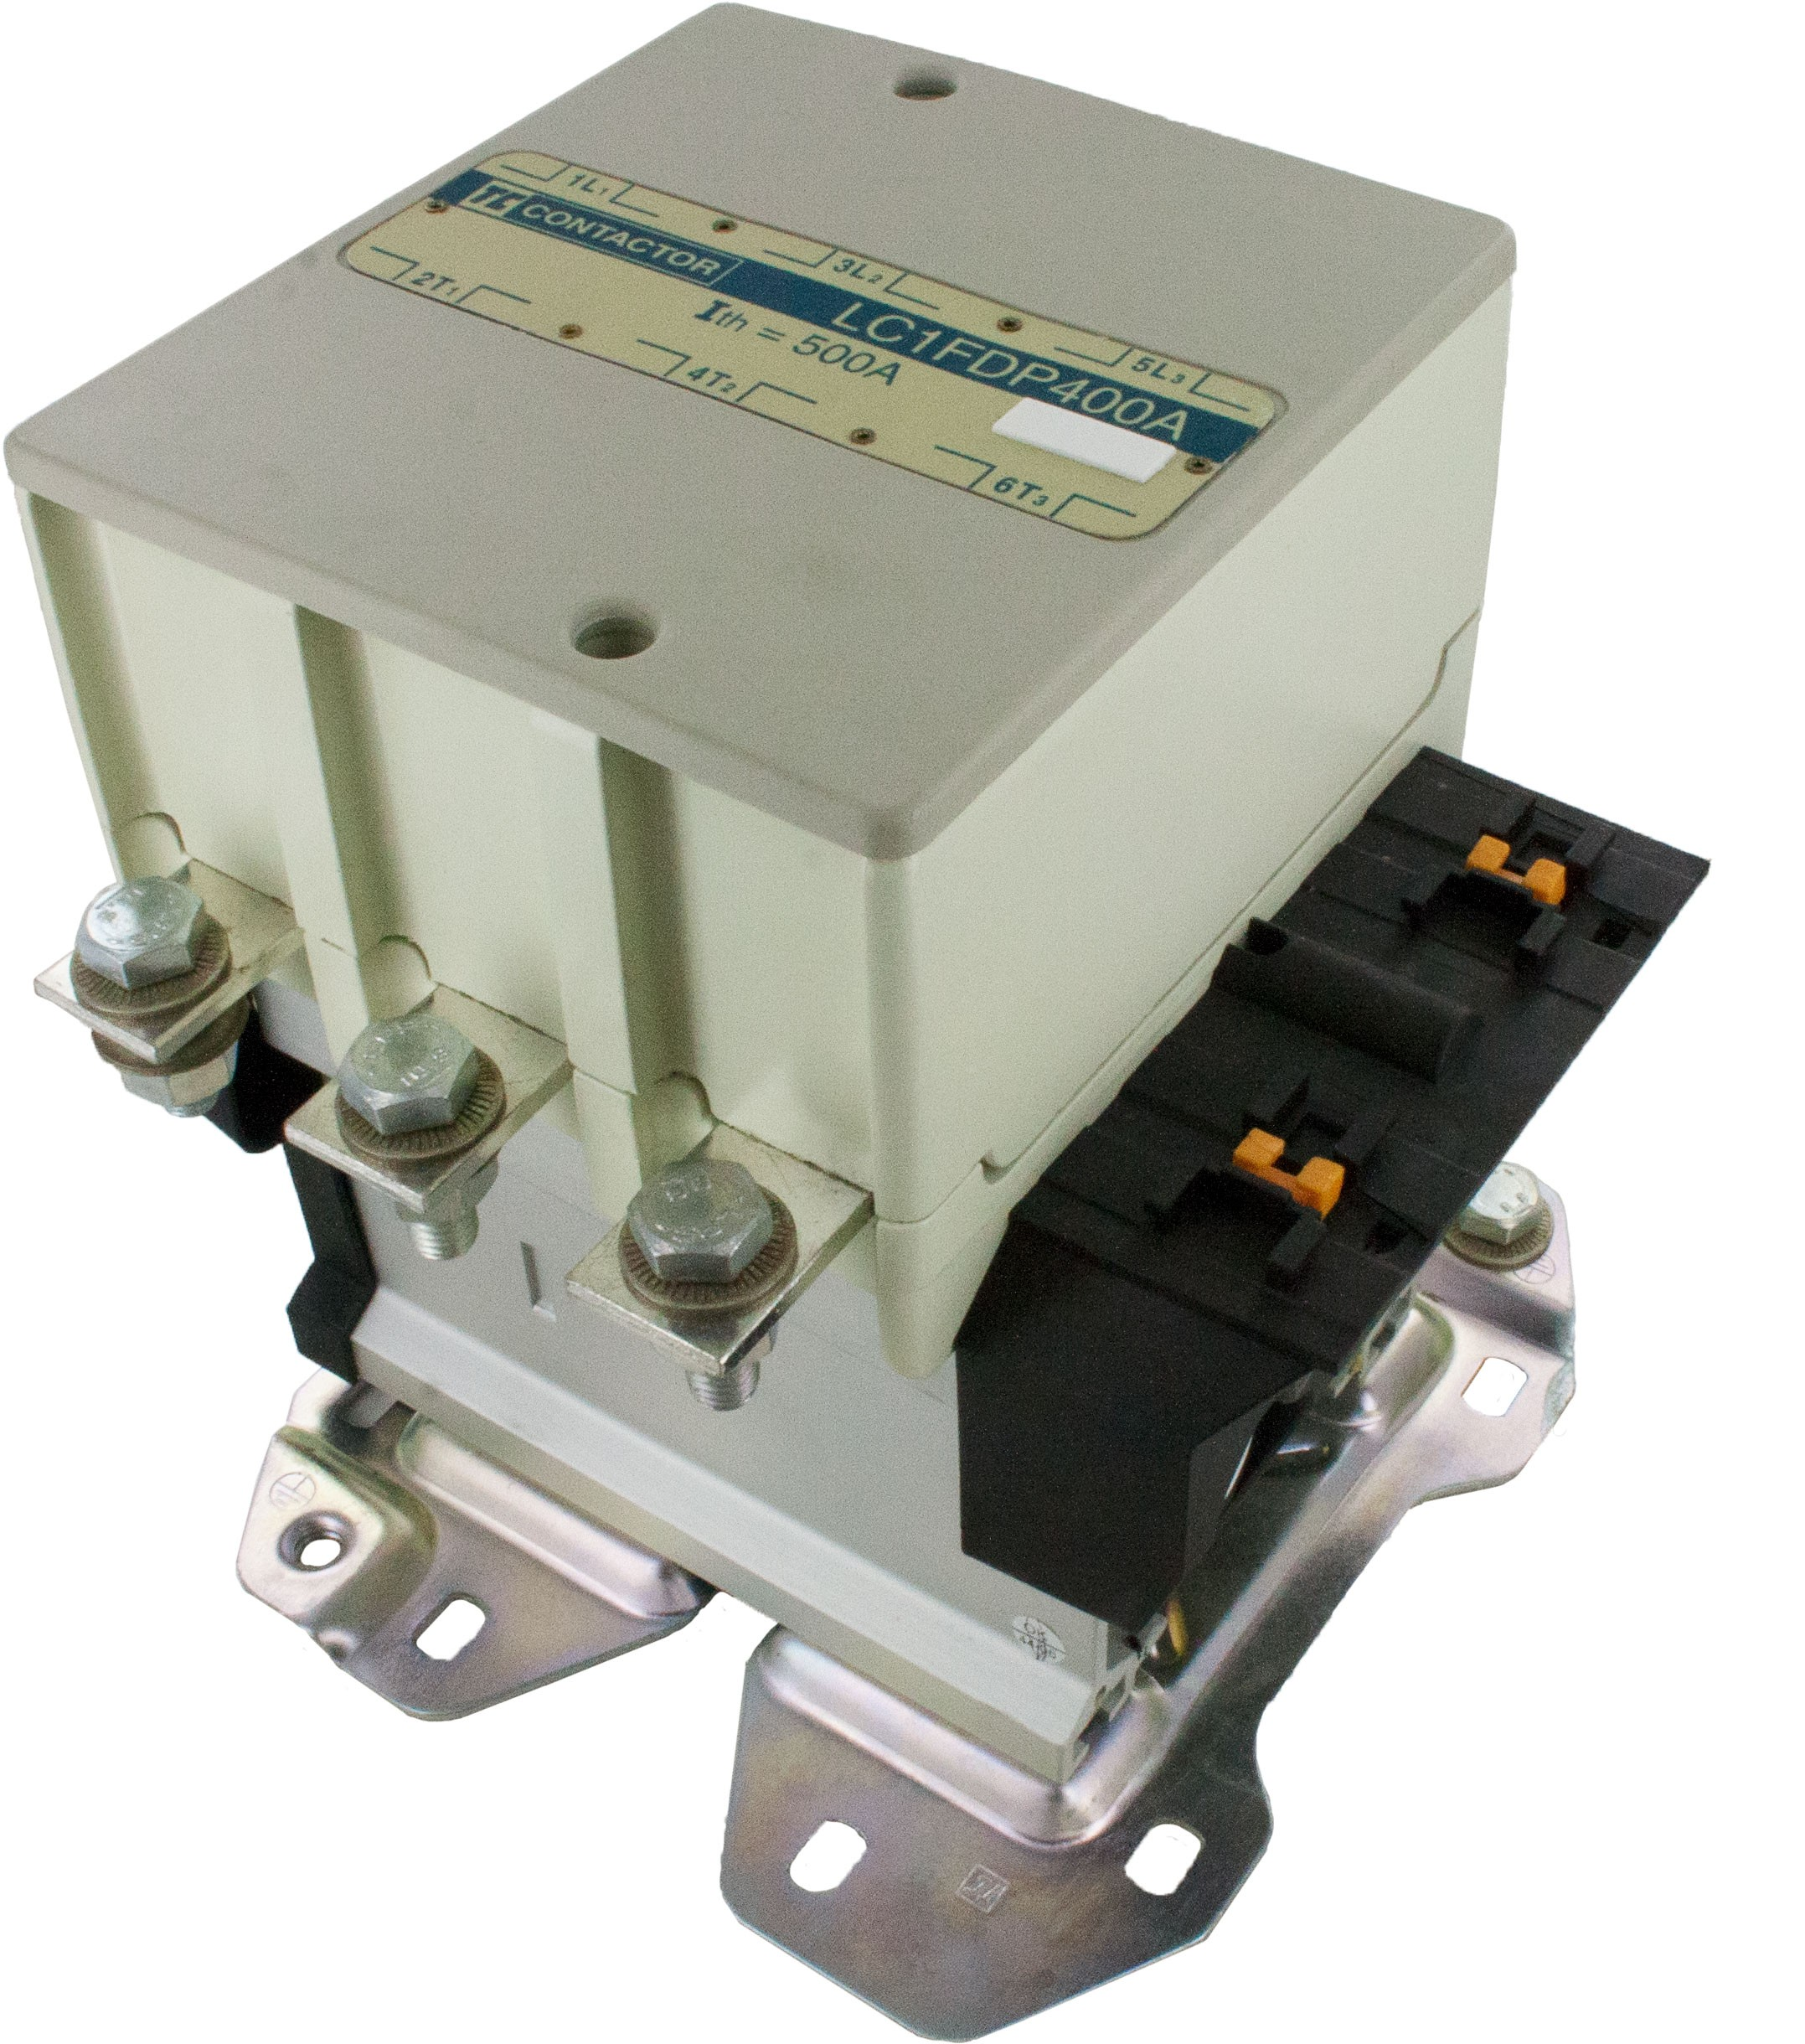 3 Pole 400 Amp Iec Contactor Elecdirect Wiring